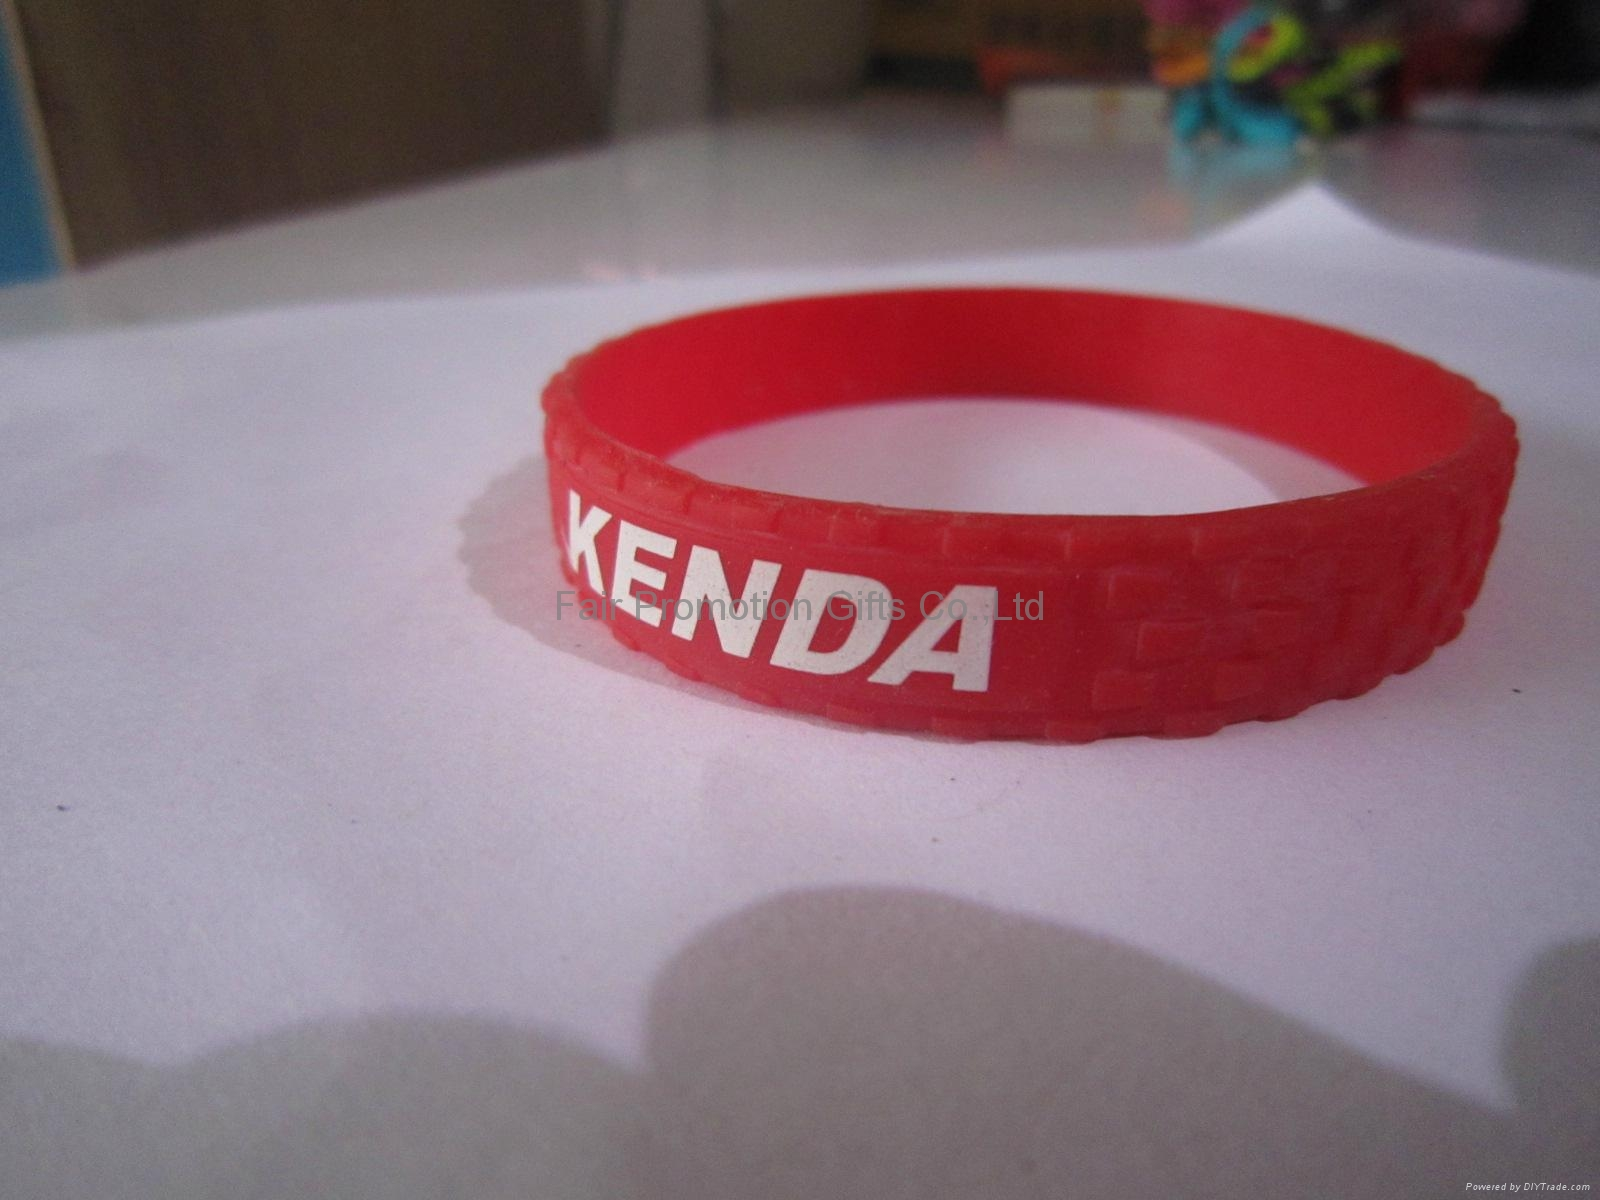 Kenda Bicycle Road Tire Bracelet 3